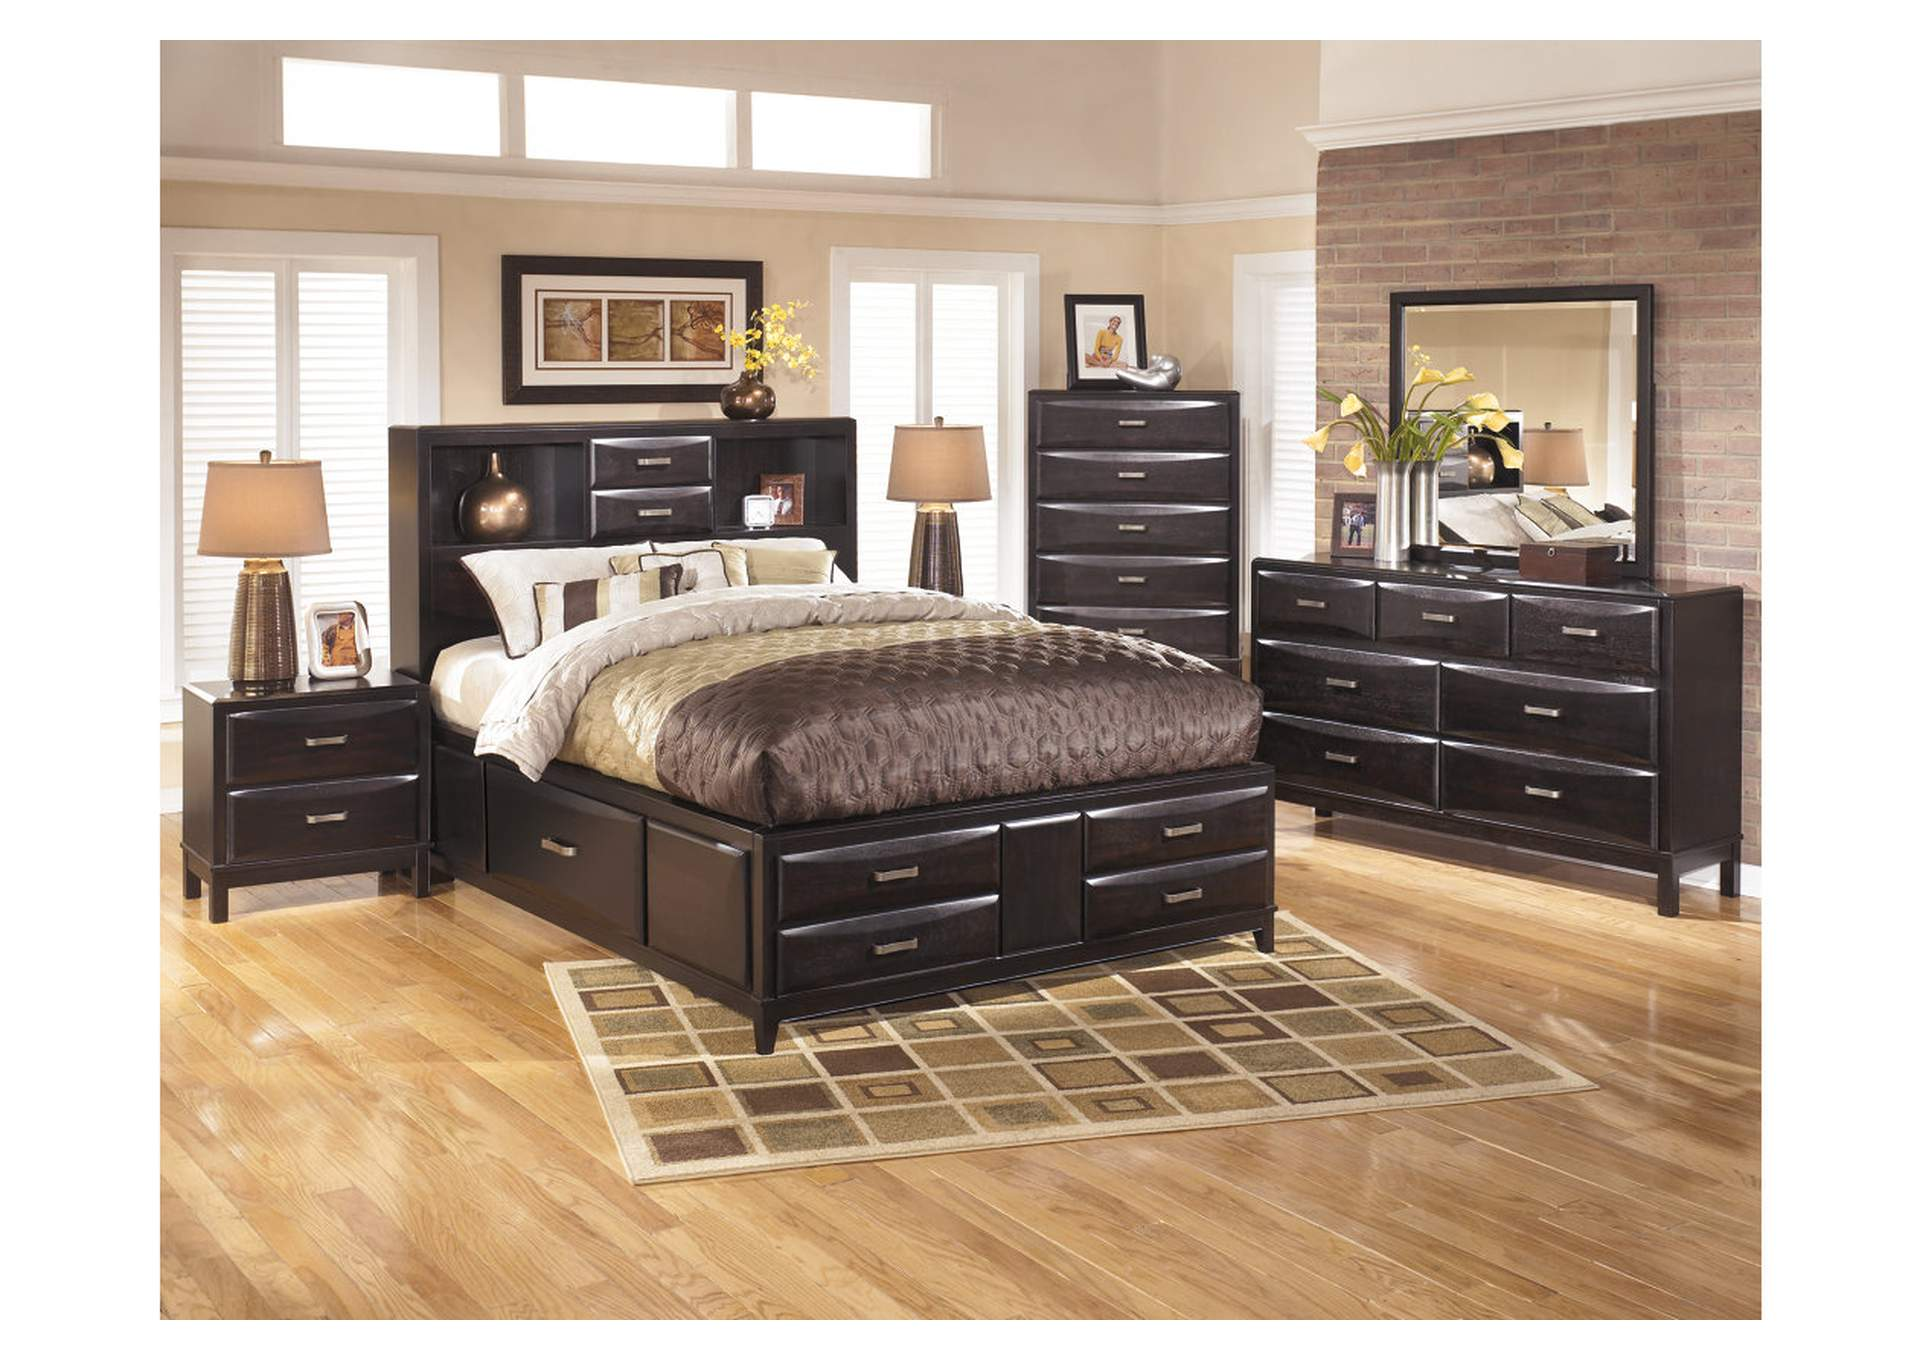 Kira Black Queen Storage Bed w/Dresser & Mirror,Ashley